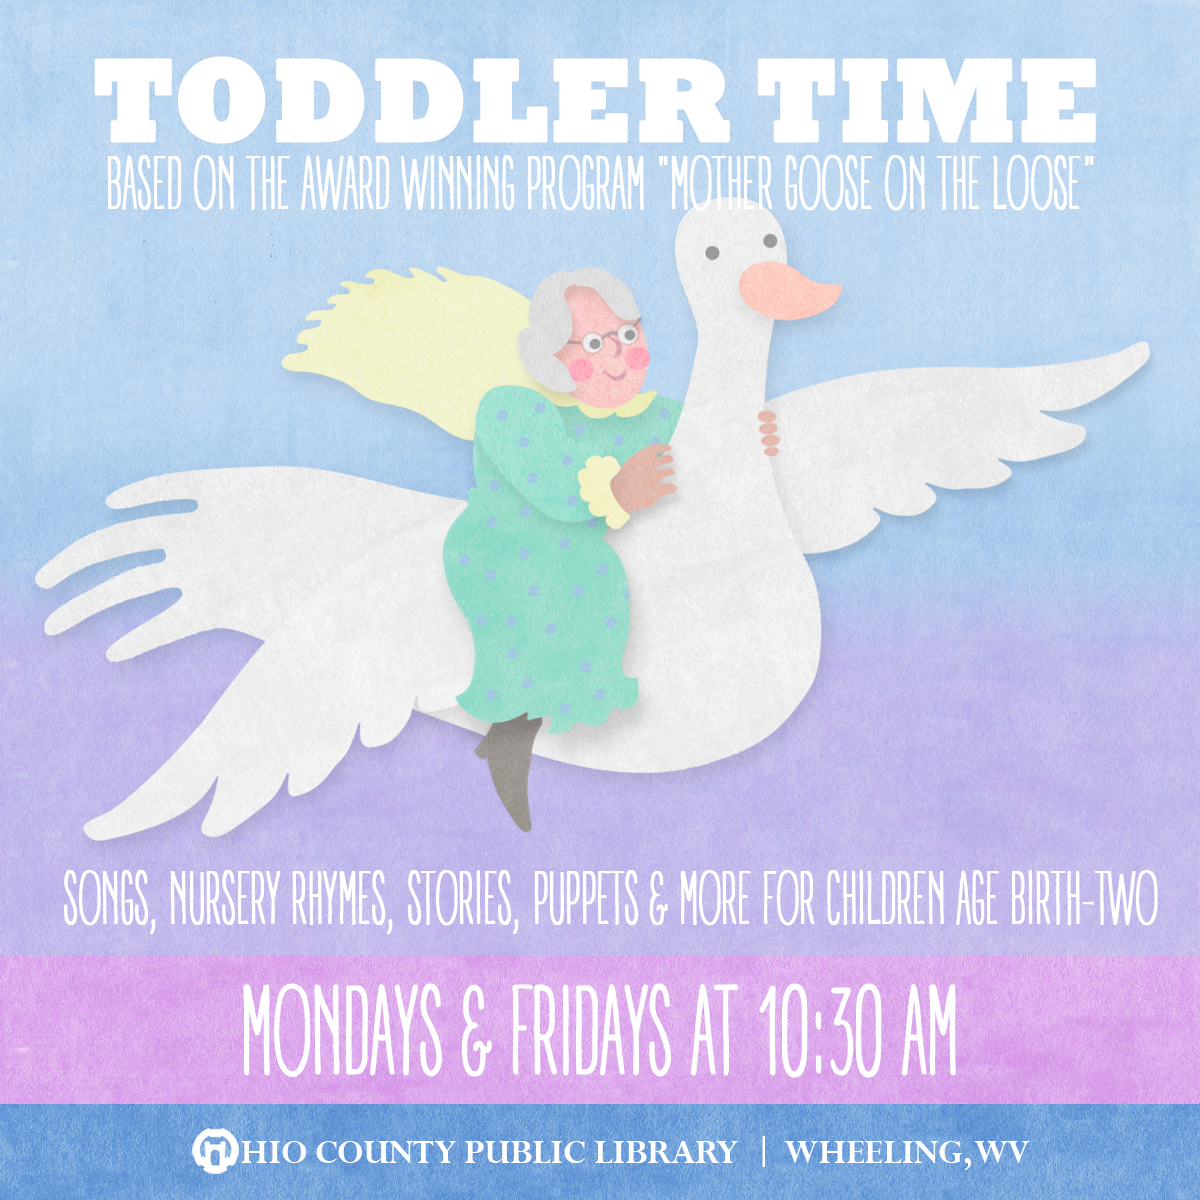 Toddler Time: Fridays at 10:30 am at the Ohio County Public Library